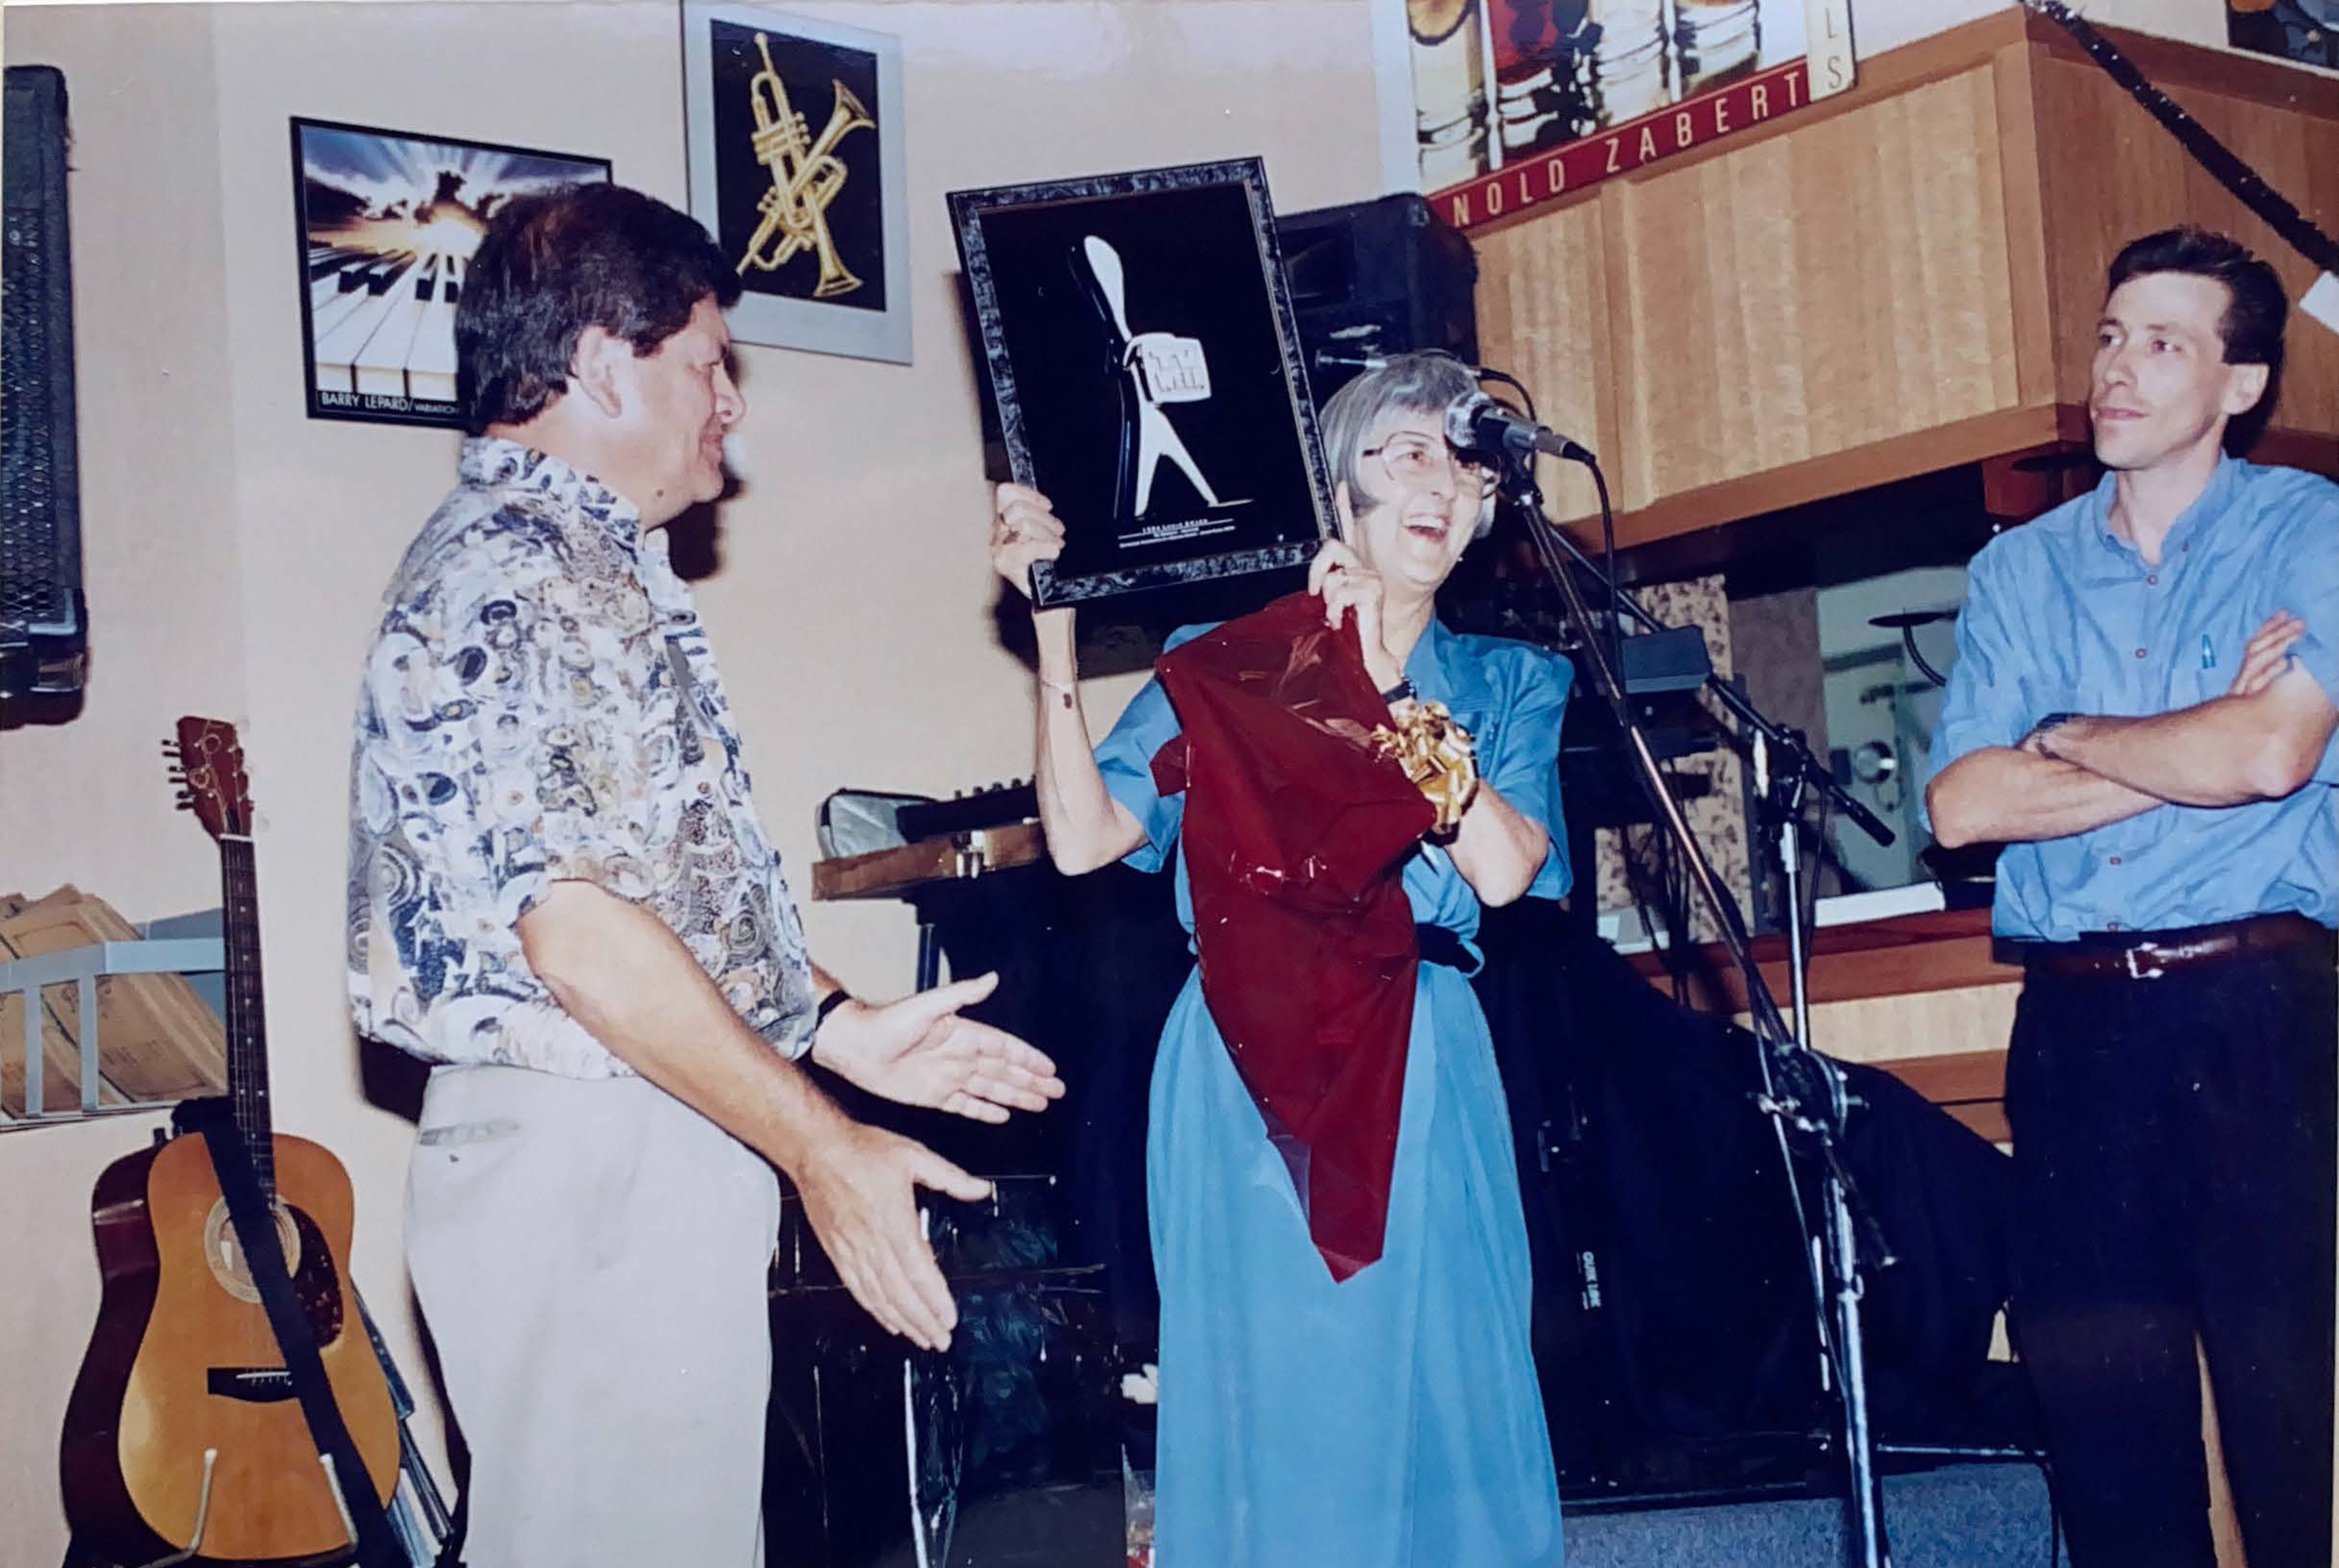 A Tribute for Rosemary Veronica MARRIOTT by David & Elizabeth Russell